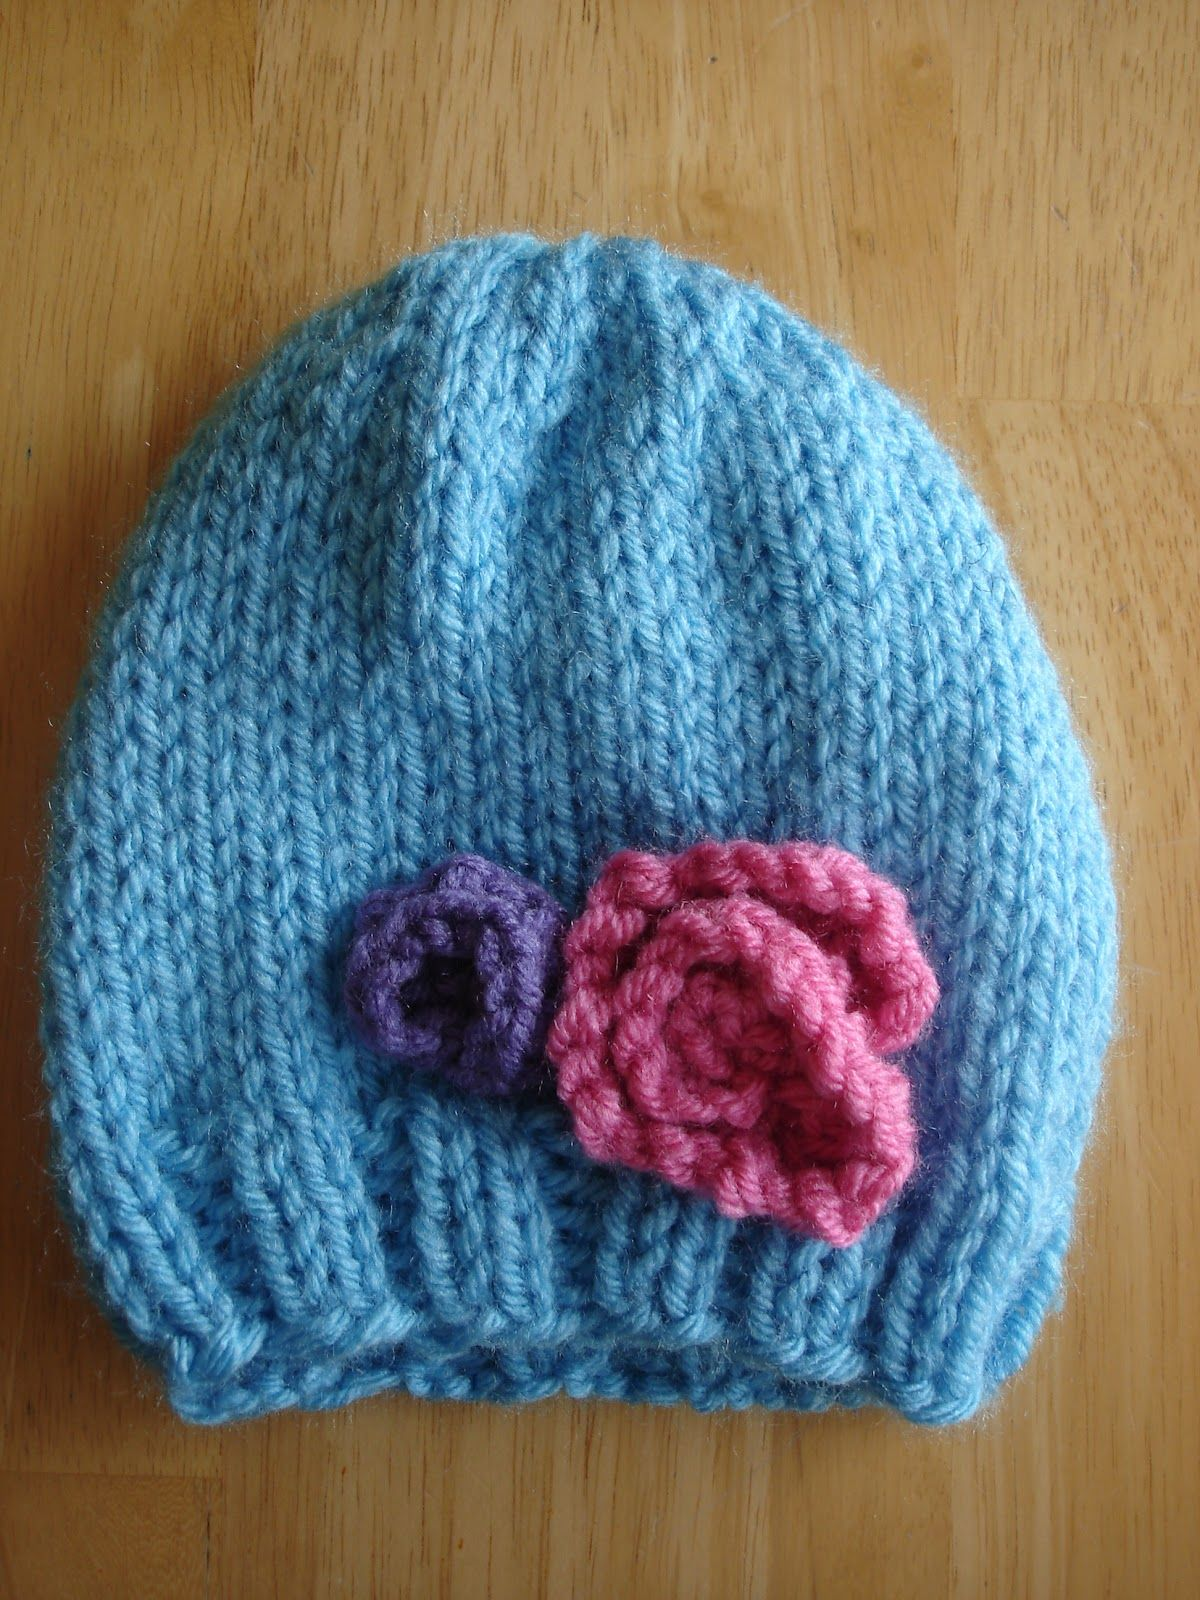 Free Knitting Pattern! Baby In Bloom Hats | Knitting patterns baby ...